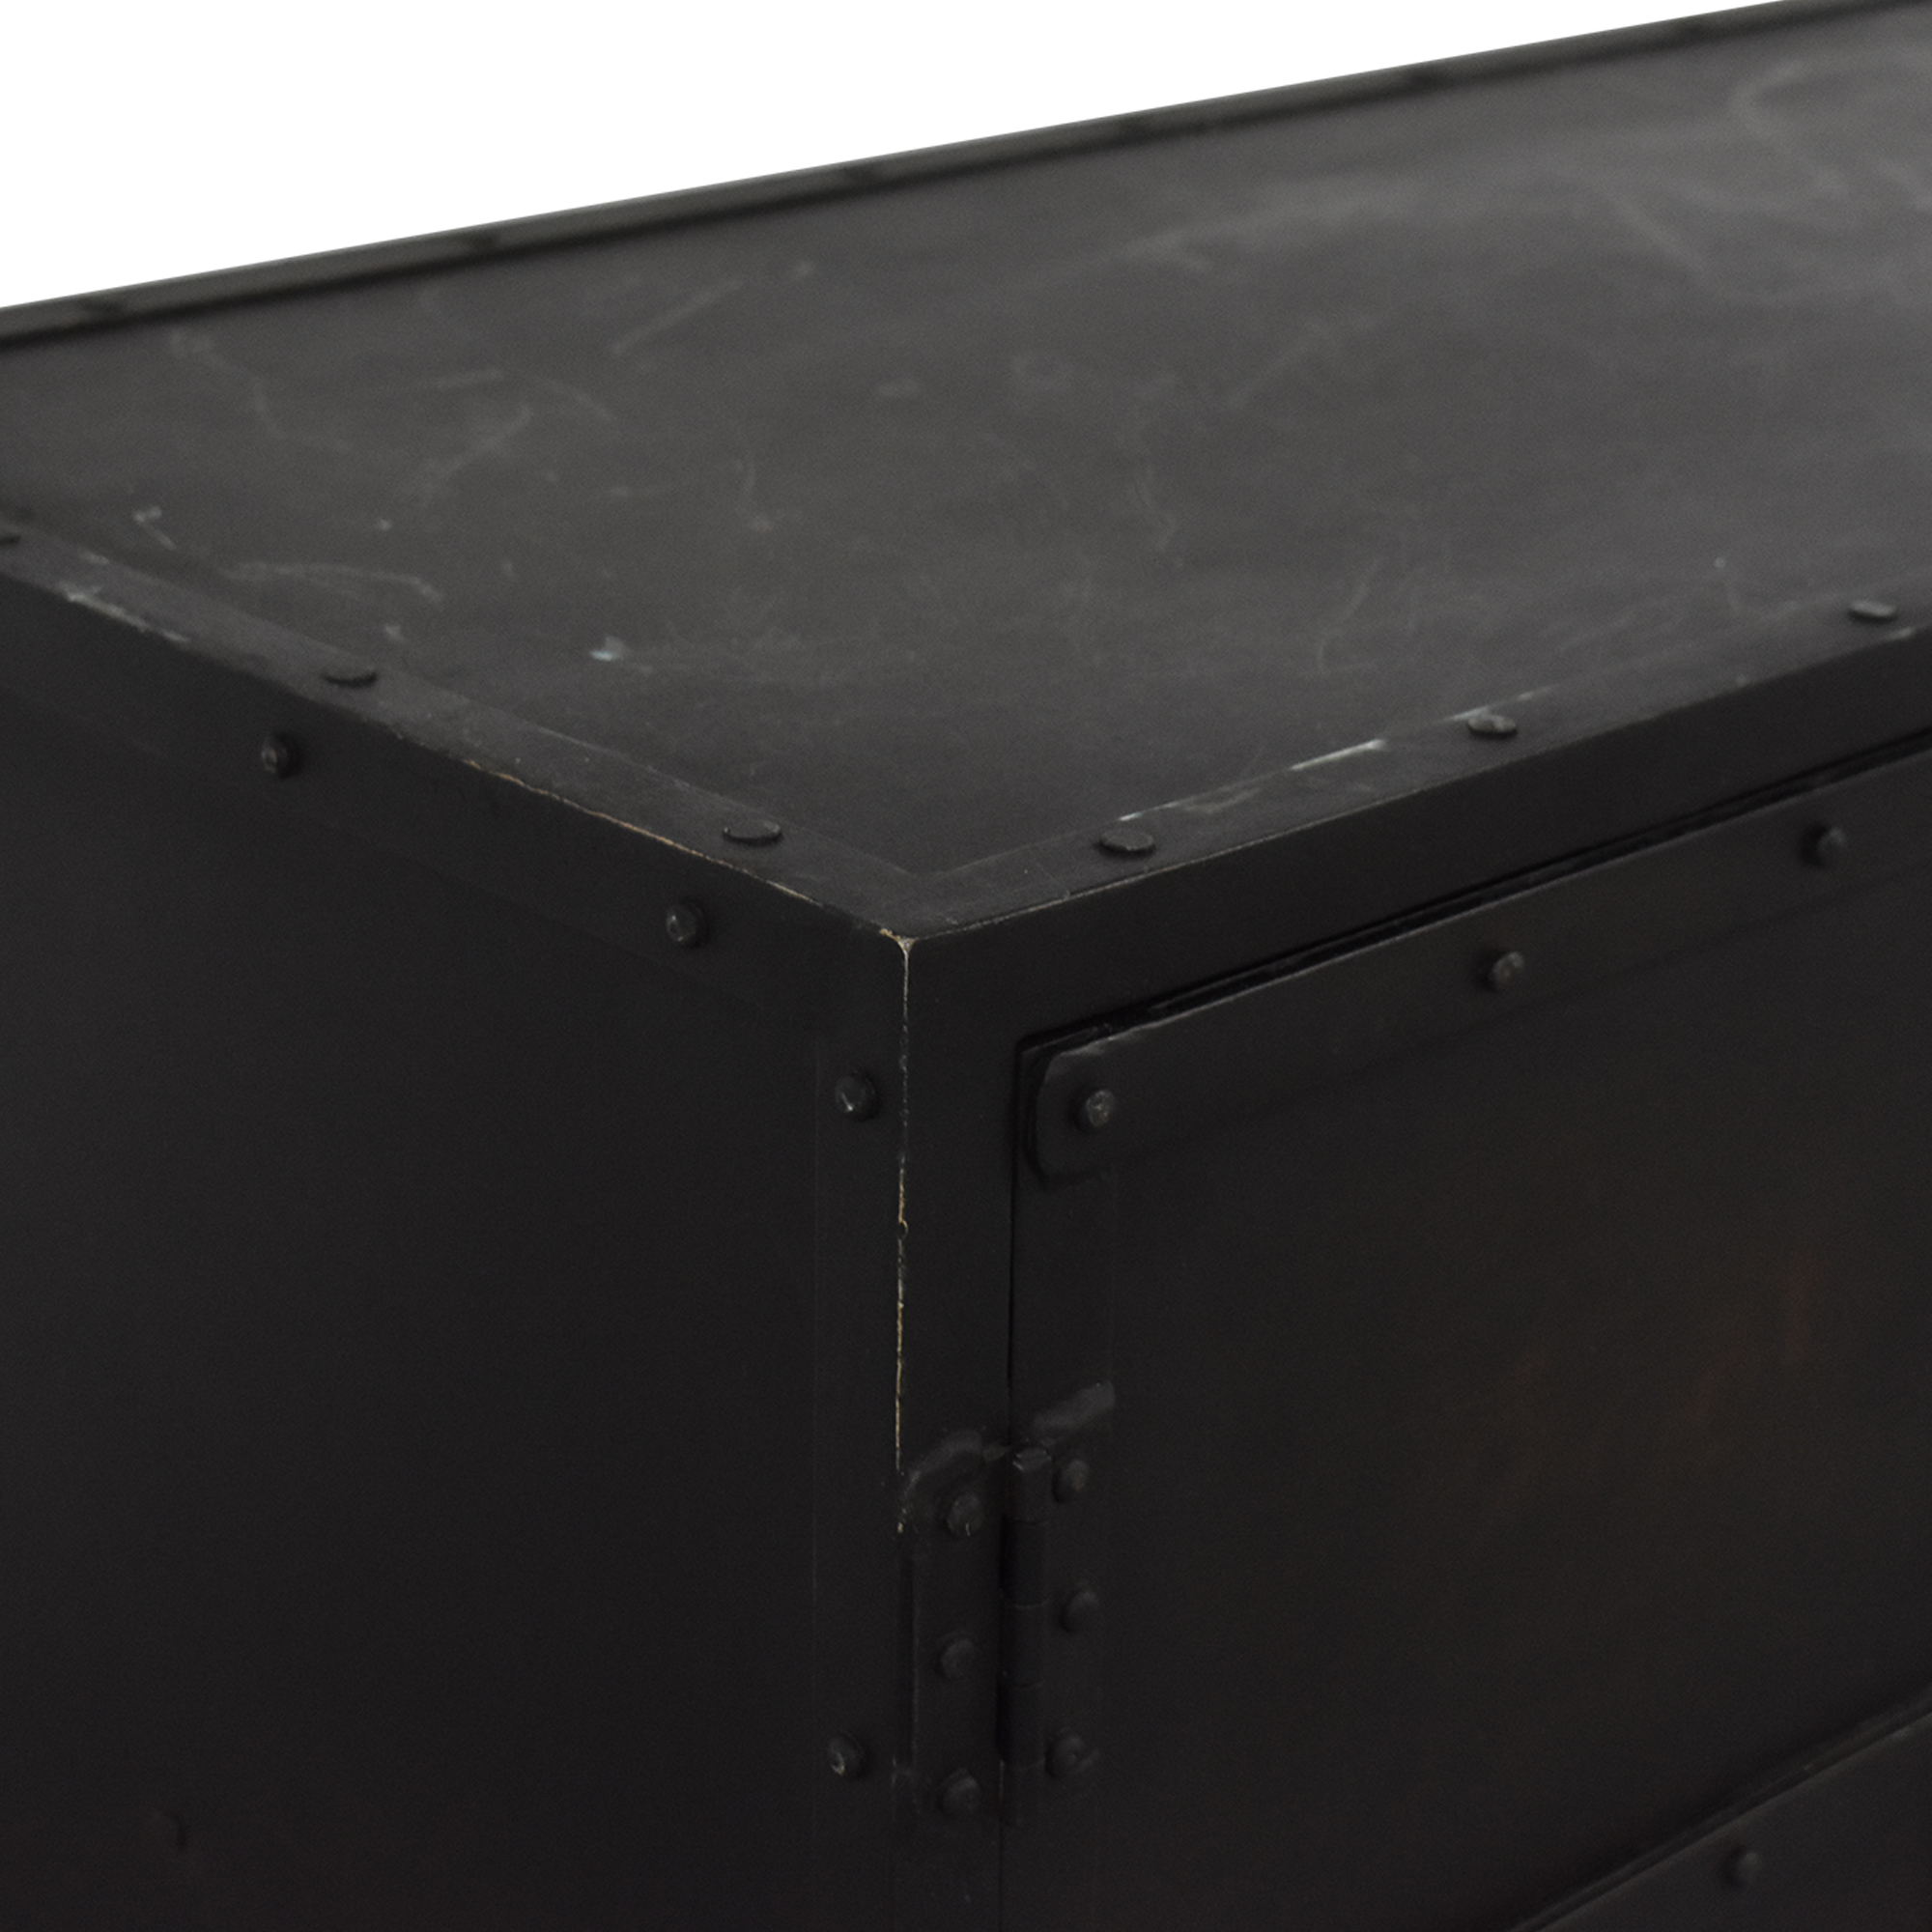 Restoration Hardware Restoration Hardware Industrial Tool Chest Sideboard dimensions